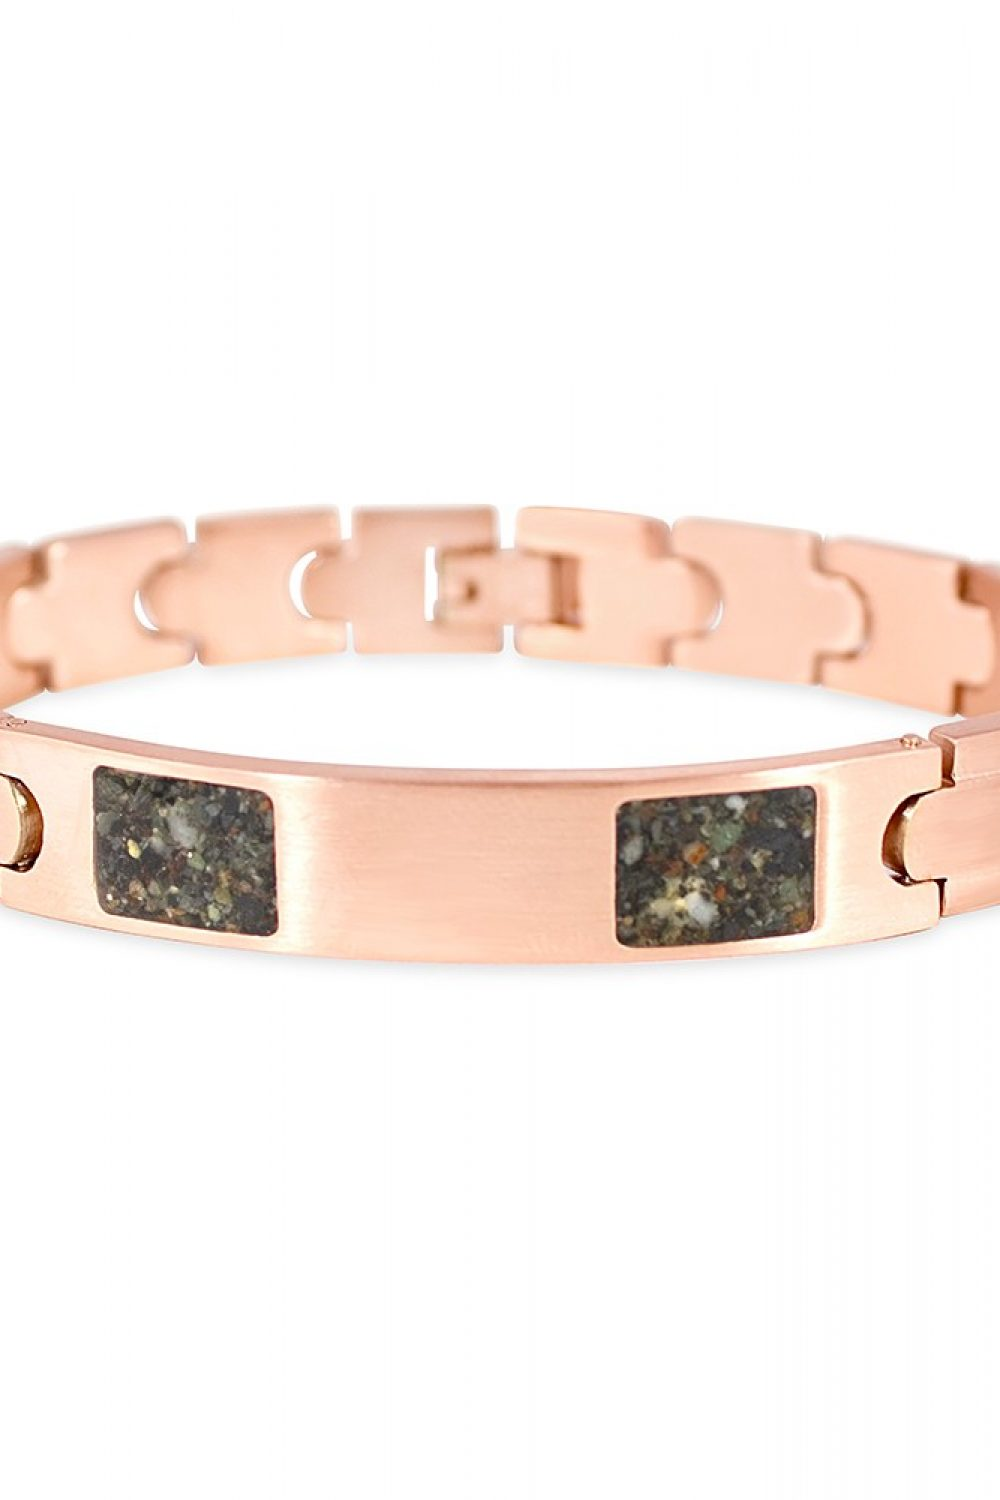 Dune Jewelry Rose Gold ID Bracelet